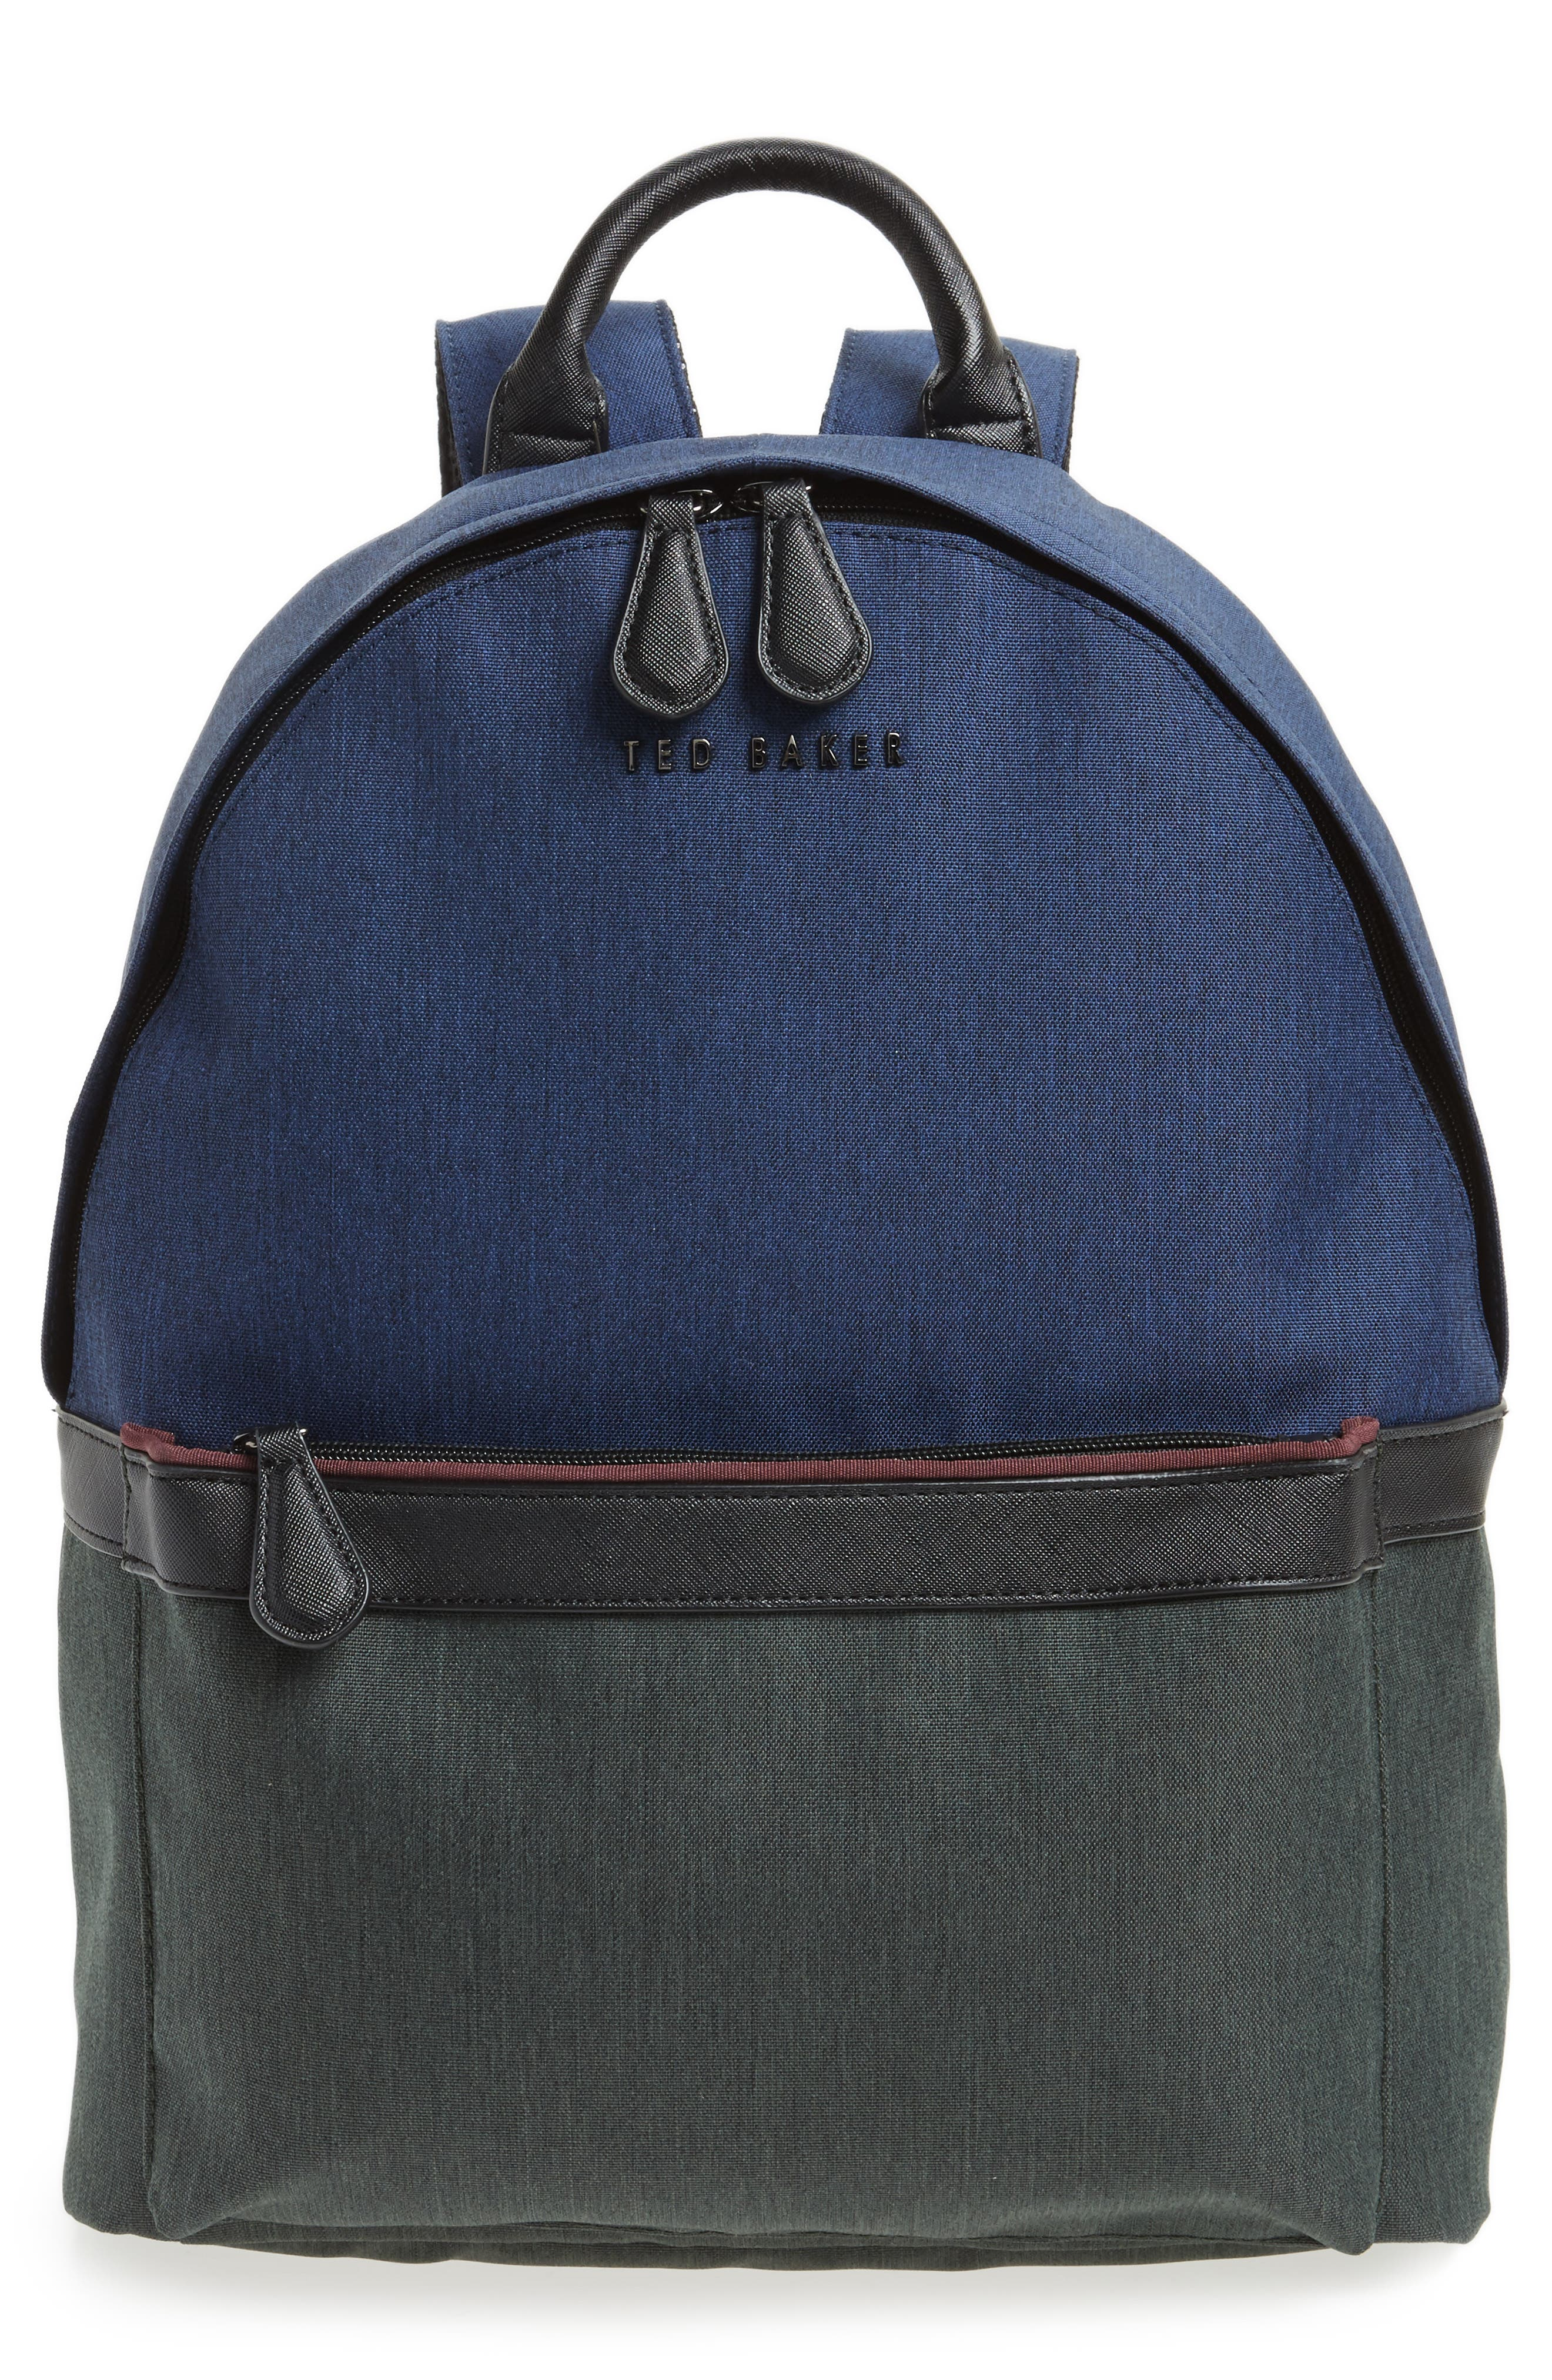 Zirabi Backpack,                         Main,                         color, Blue